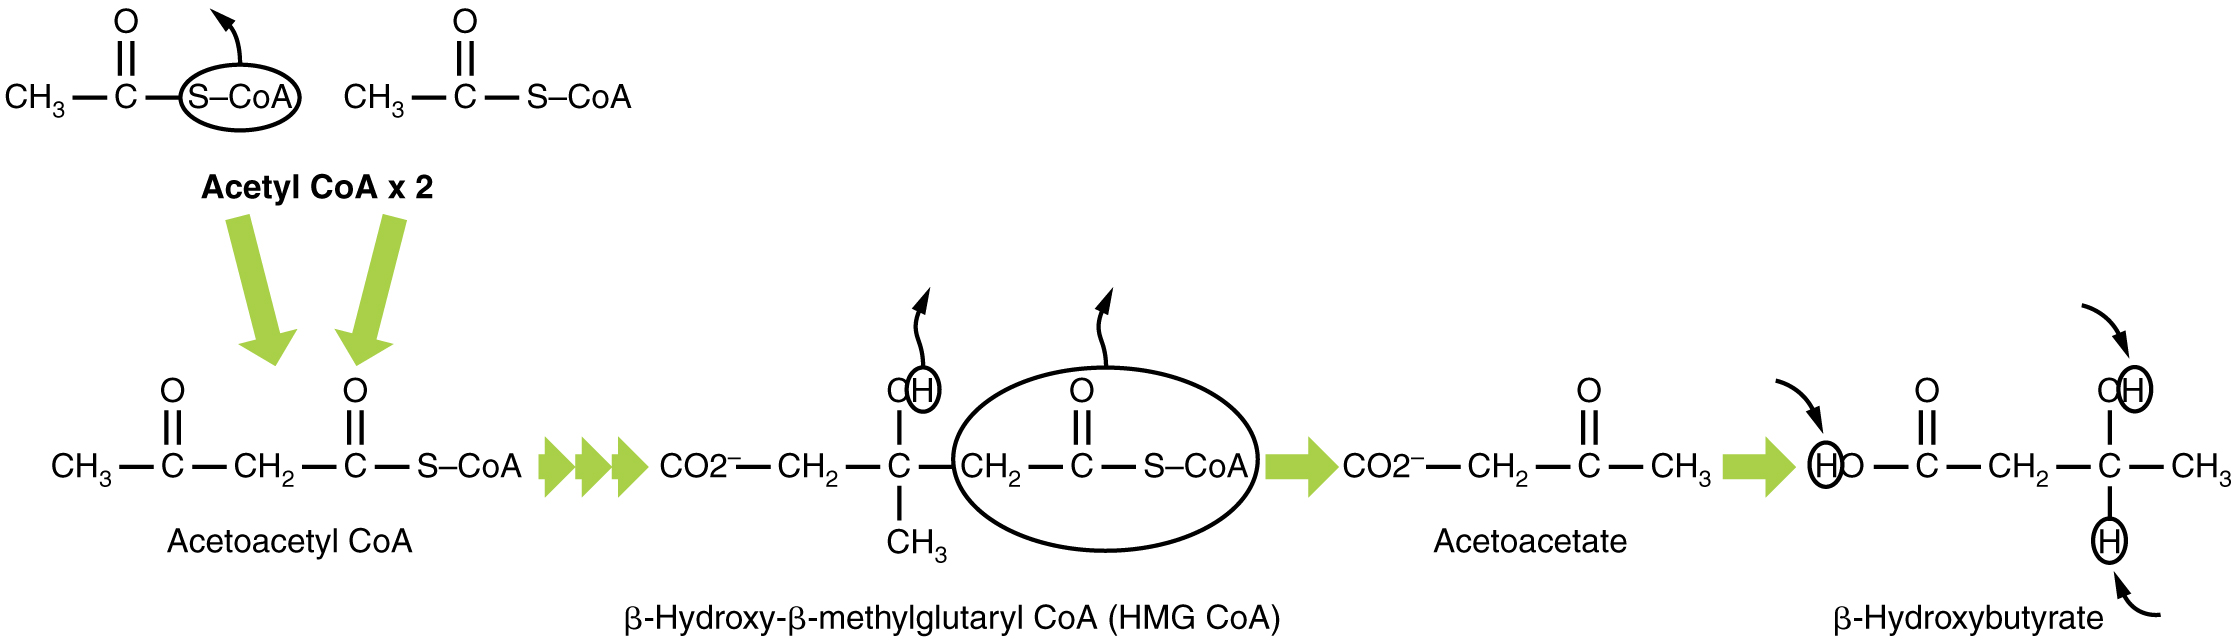 This pathway shows the production of beta-hydroxybutyrate from acetyl-CoA.